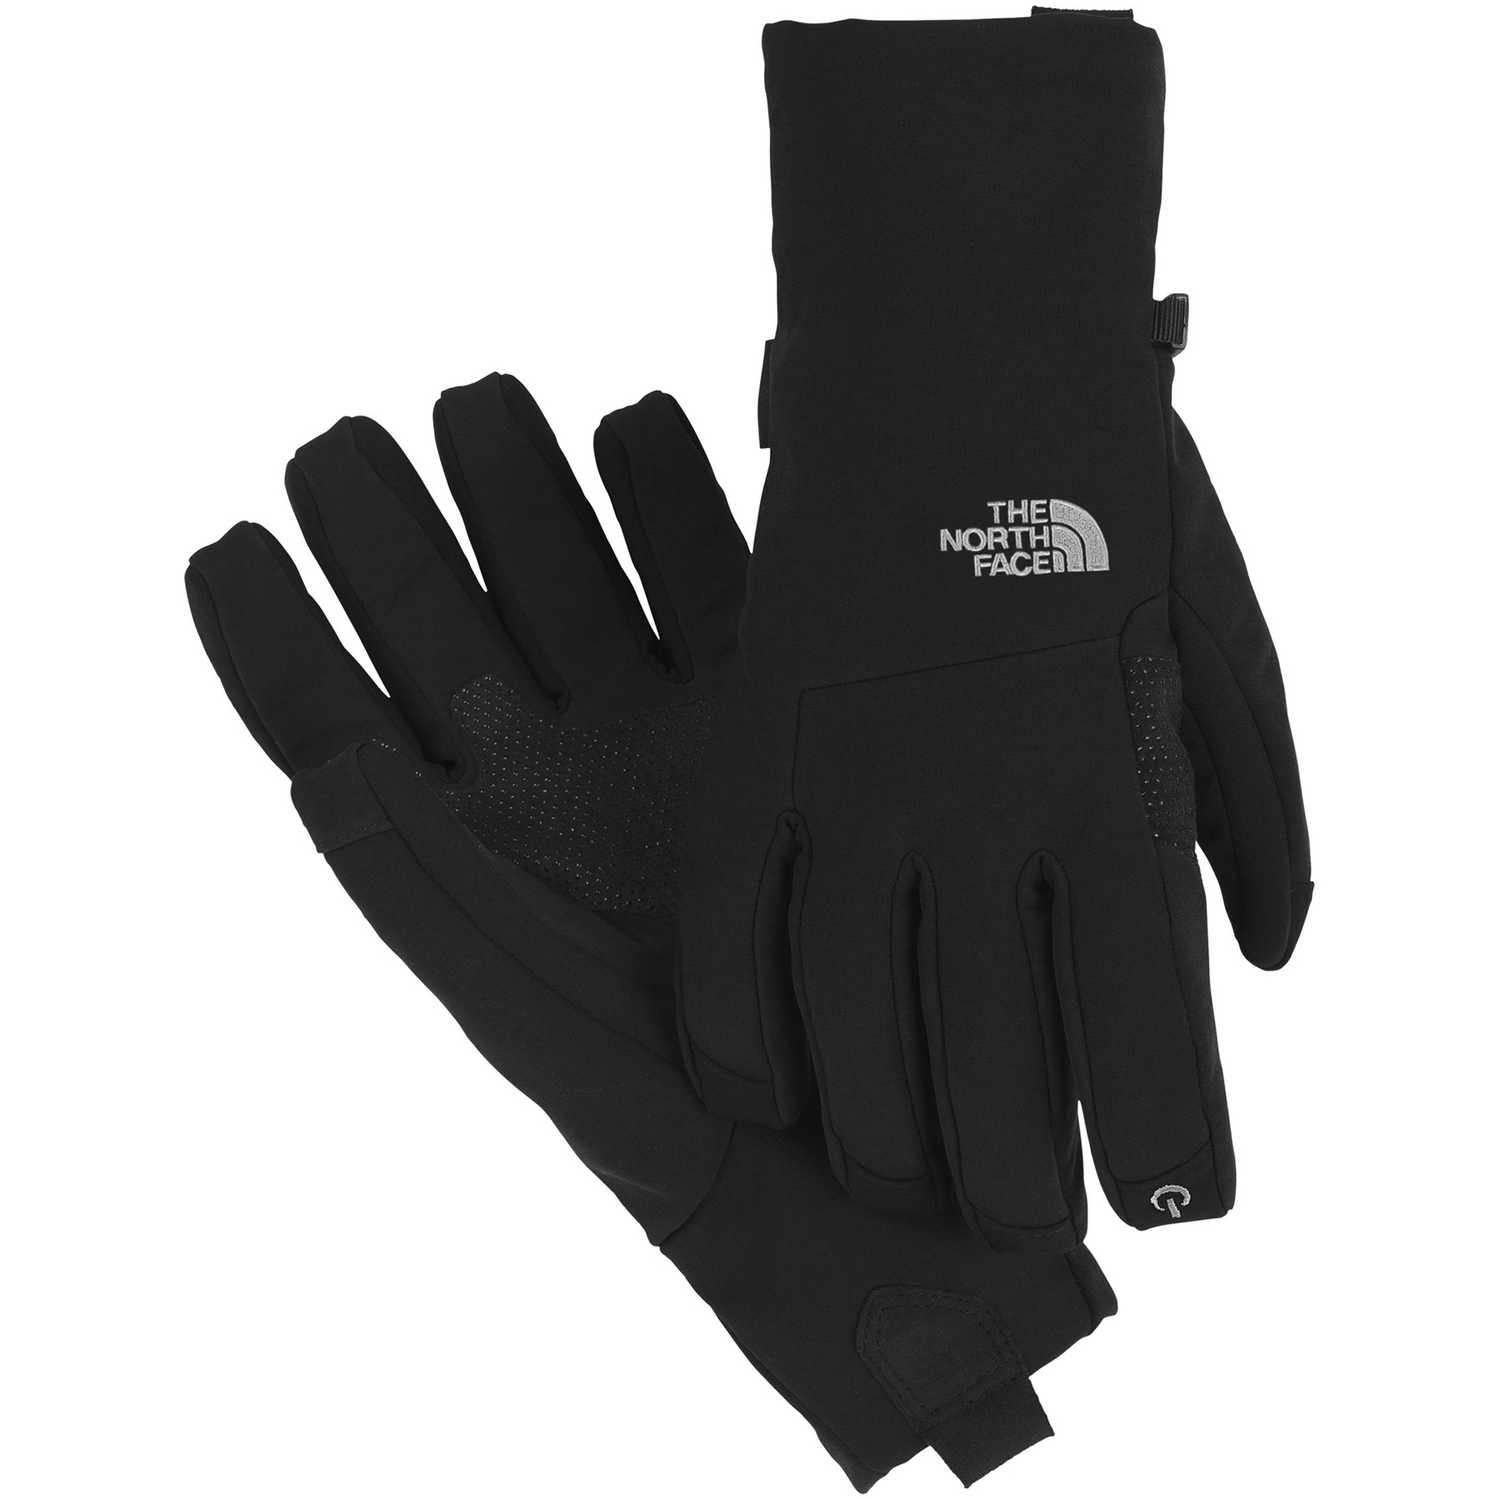 Guantes de Hombre The North Face Negro m apex etip glove